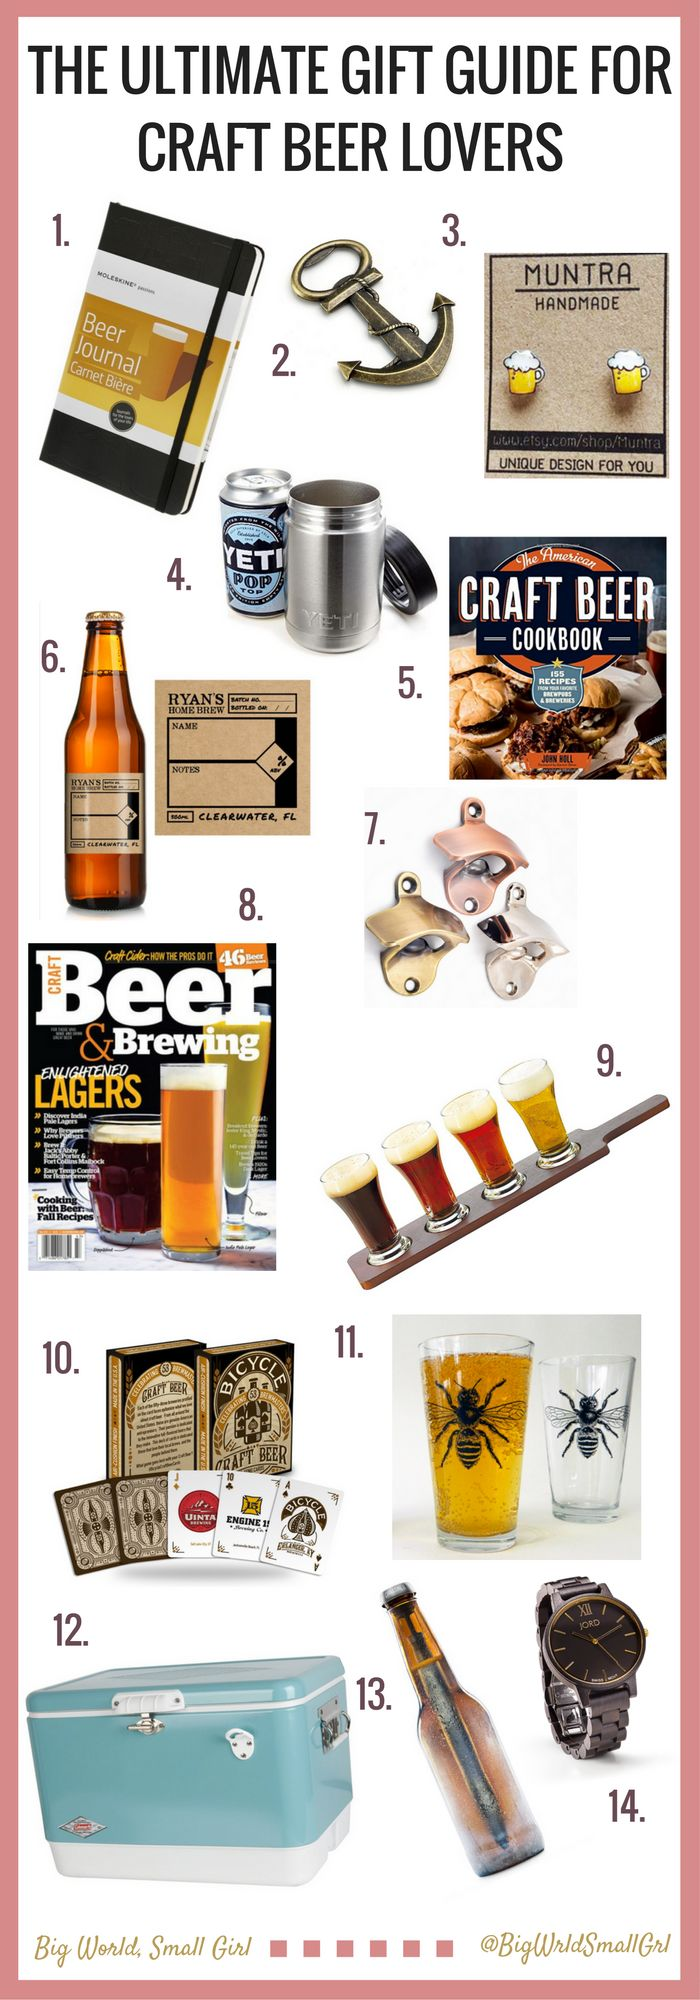 23 best Gifts for Beer Lovers images on Pinterest | Beer lovers ...